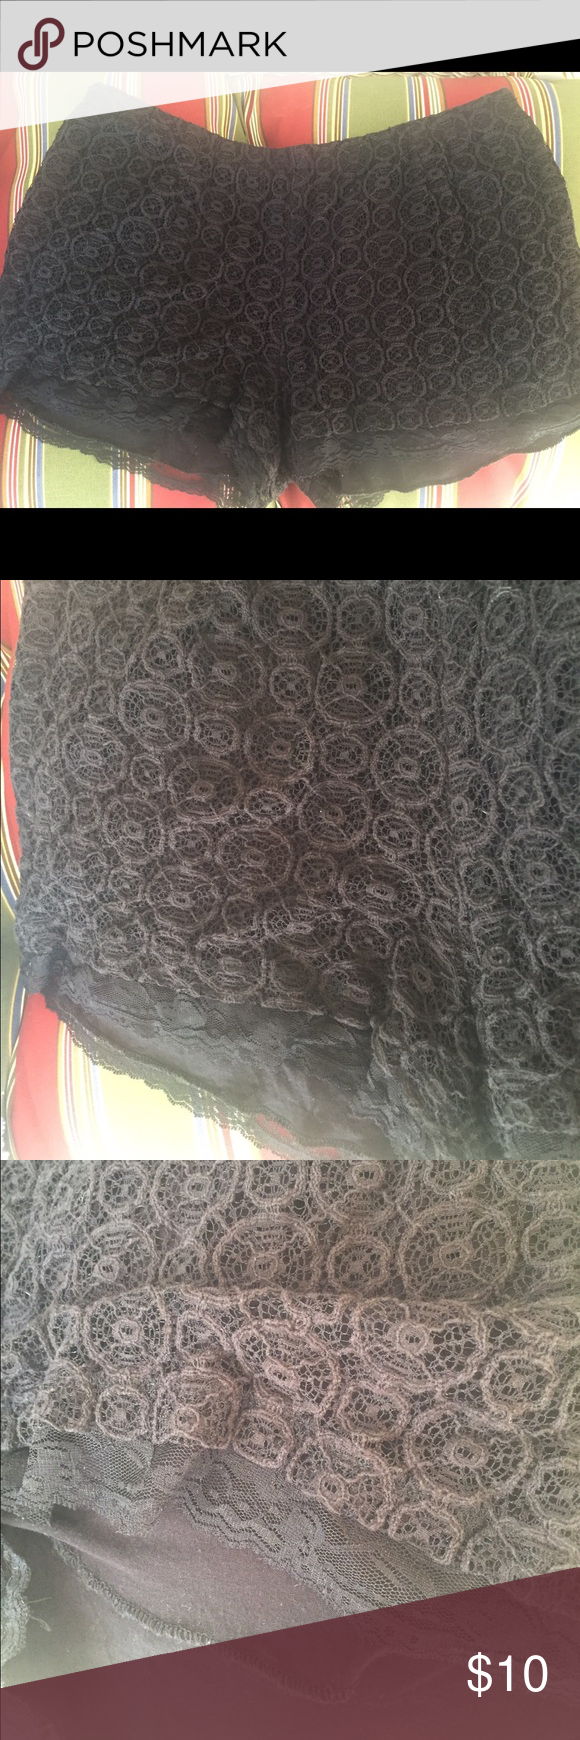 Black crochet shorts XL These cute black crochet shorts are perfect for spring and summer. They are a stretchy material and is lined. The lining on the shorts extends past the shorts to give it a little more length and is a stretchy  lace material. PacSun Shorts Skorts